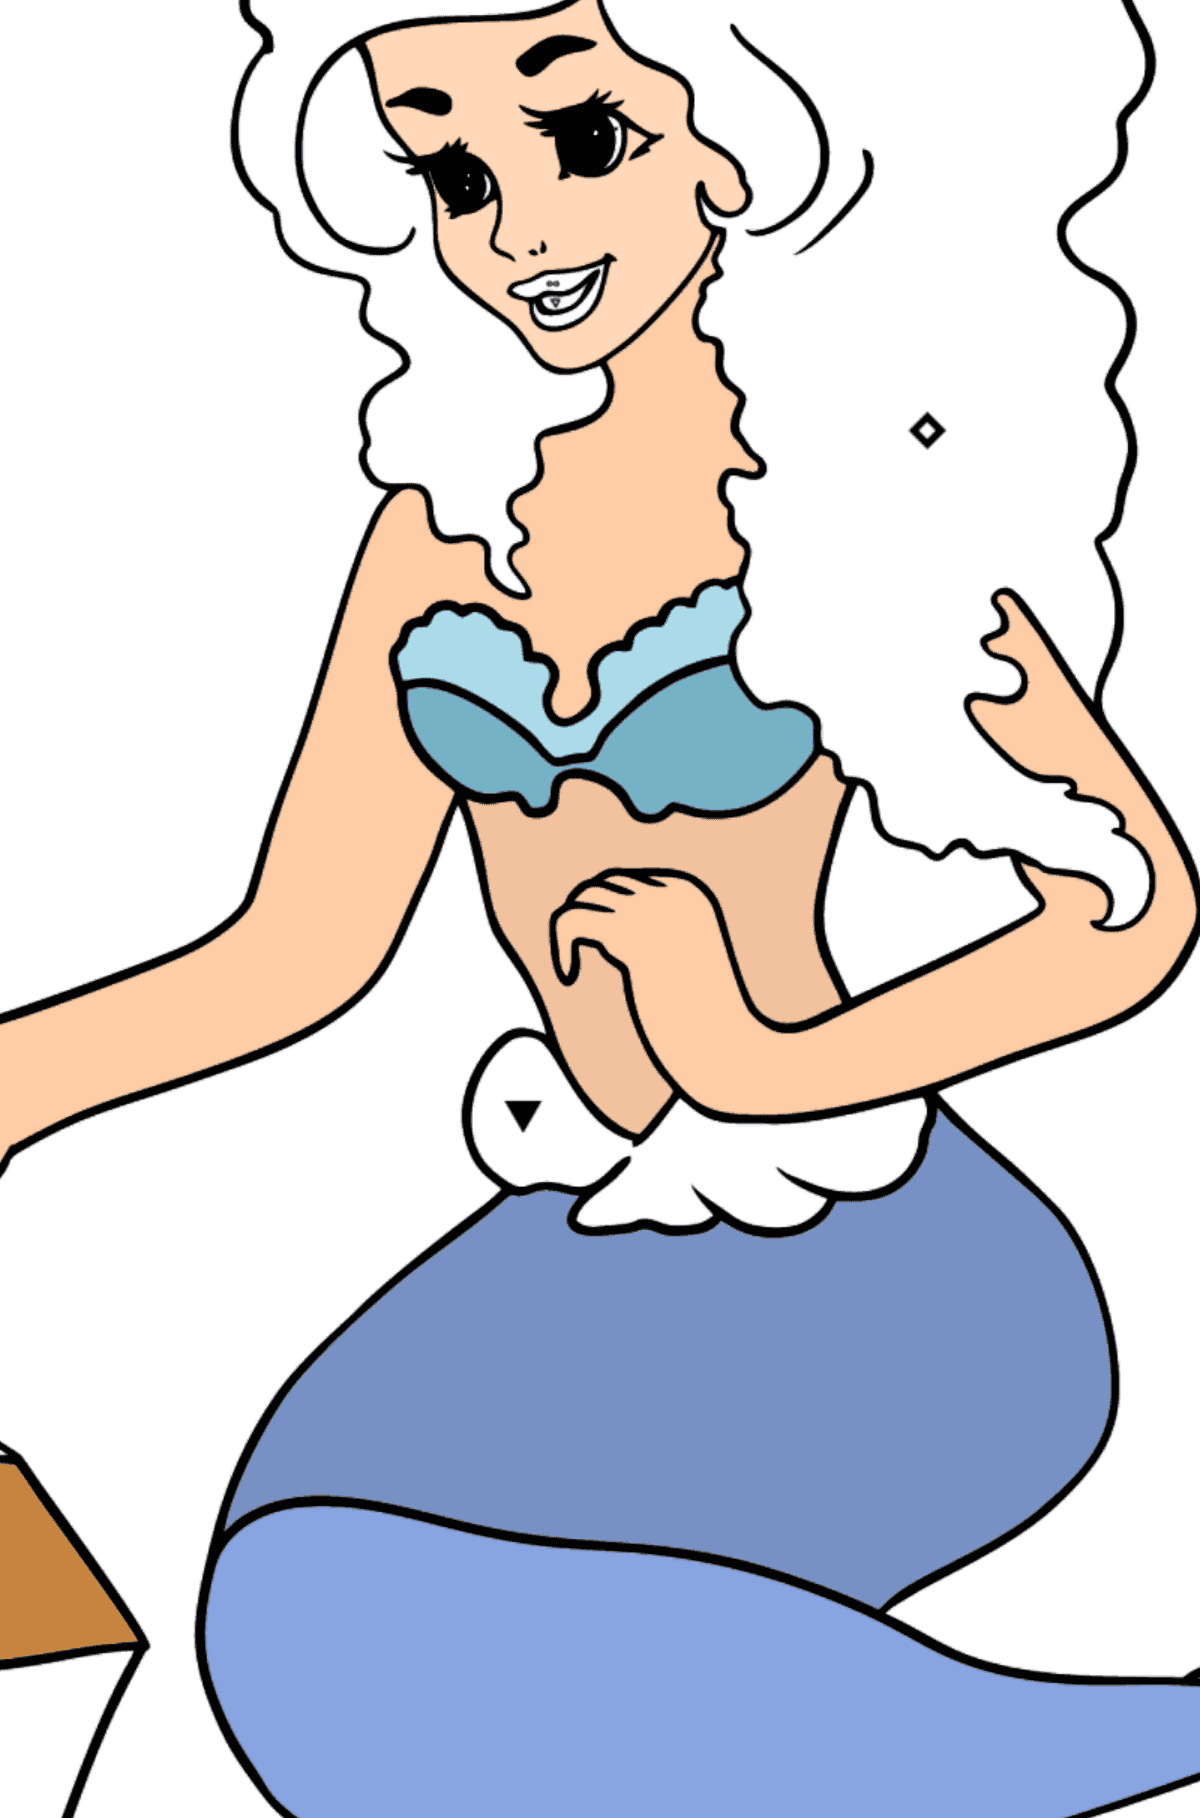 Coloring Page Mermaid and Chest - Coloring by Symbols for Kids